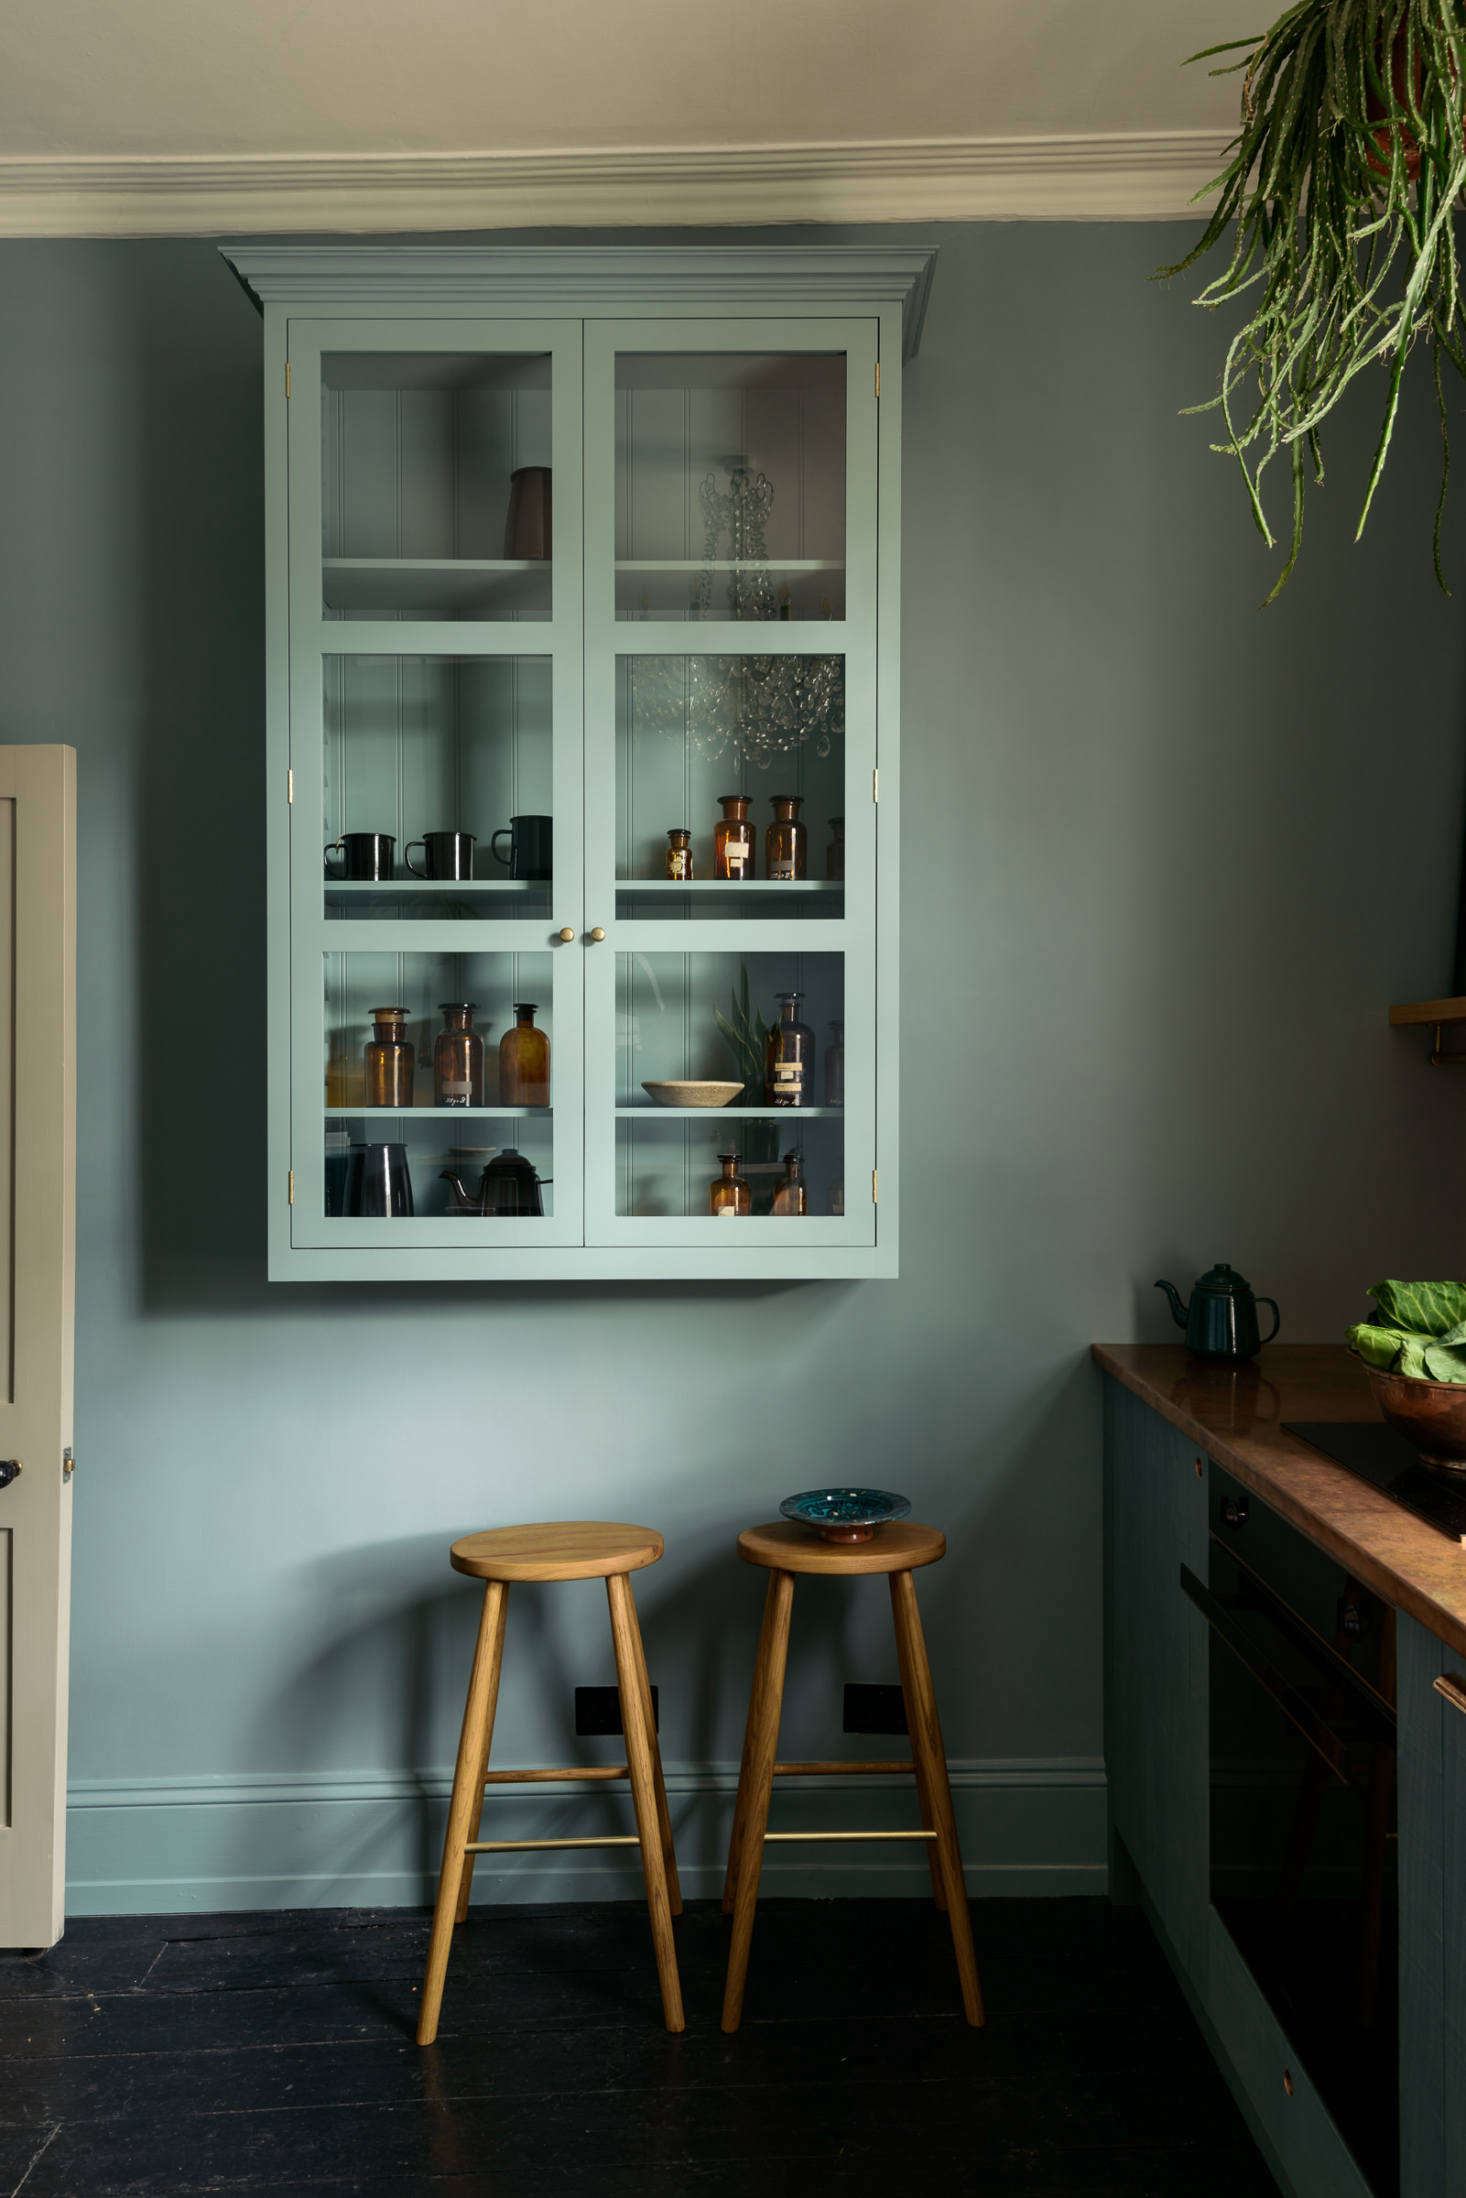 For wall cabinetry, Parker opted to install a London Glazed Wall Cupboard (£src=